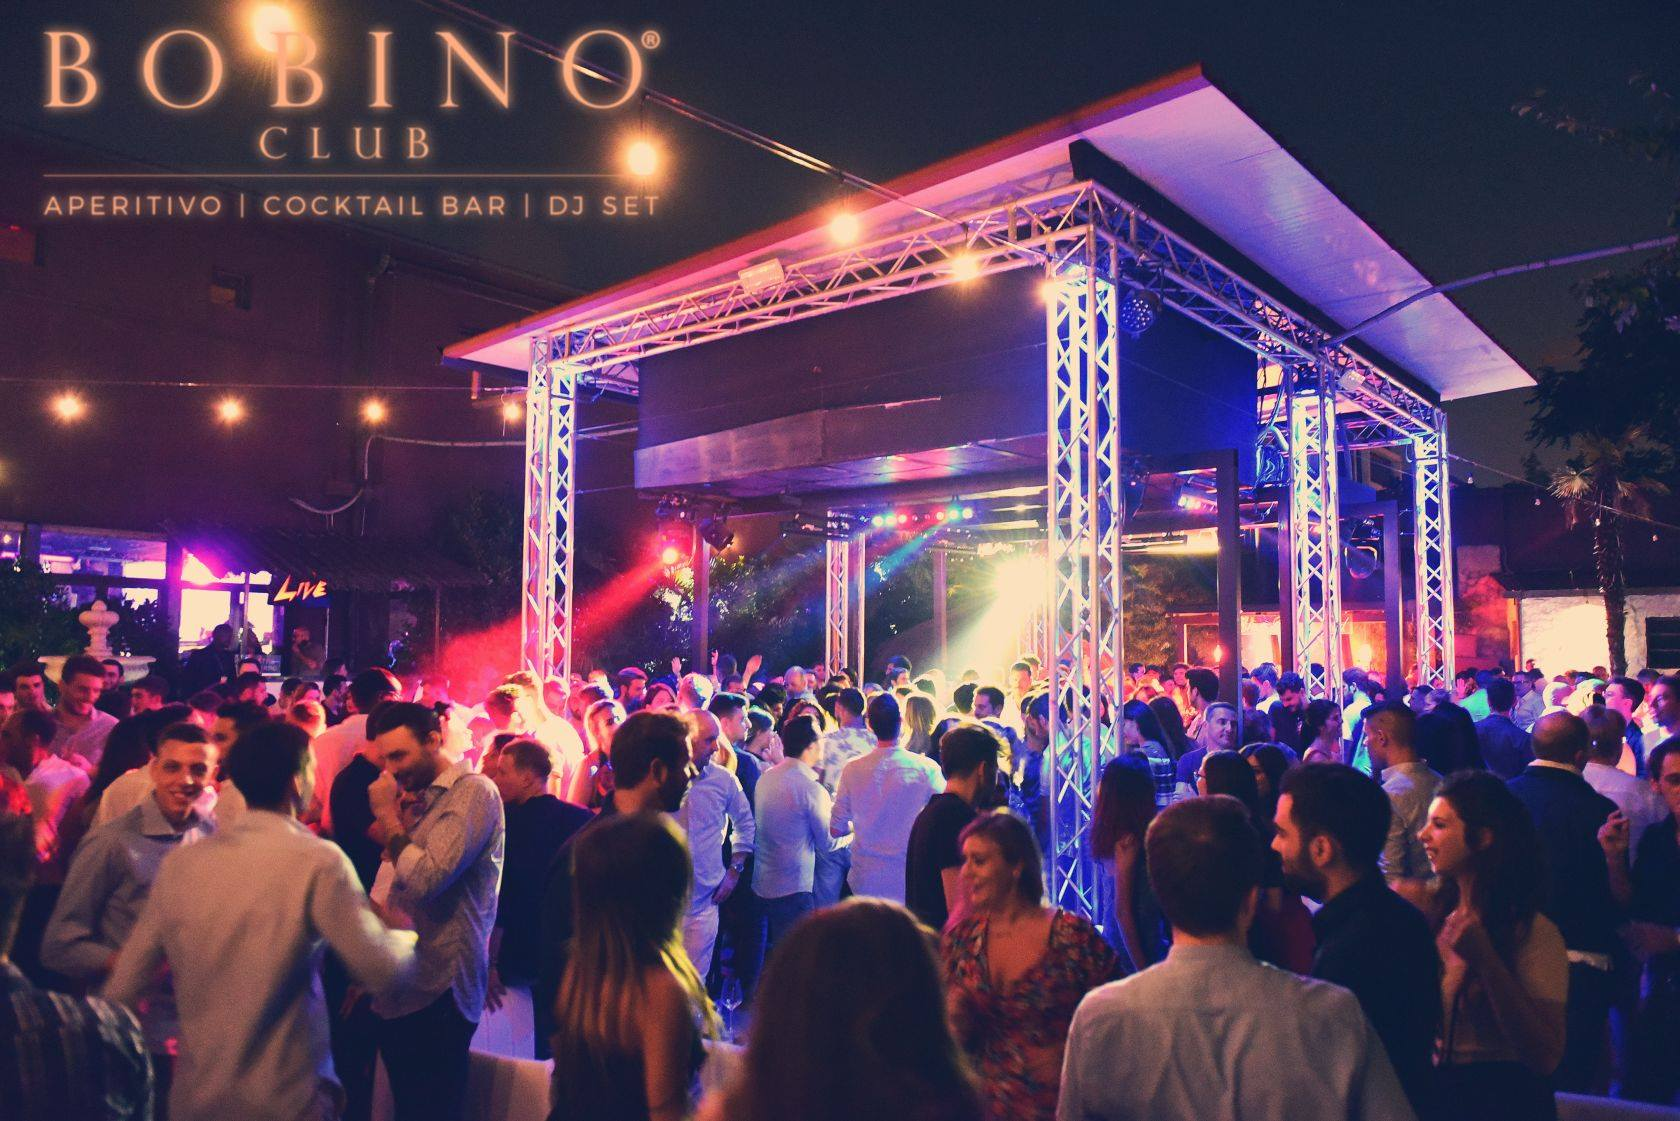 bobino-club-milano-aperitivo-dj-set-cocktail-bar-sandro-bani-dj-resident-2019